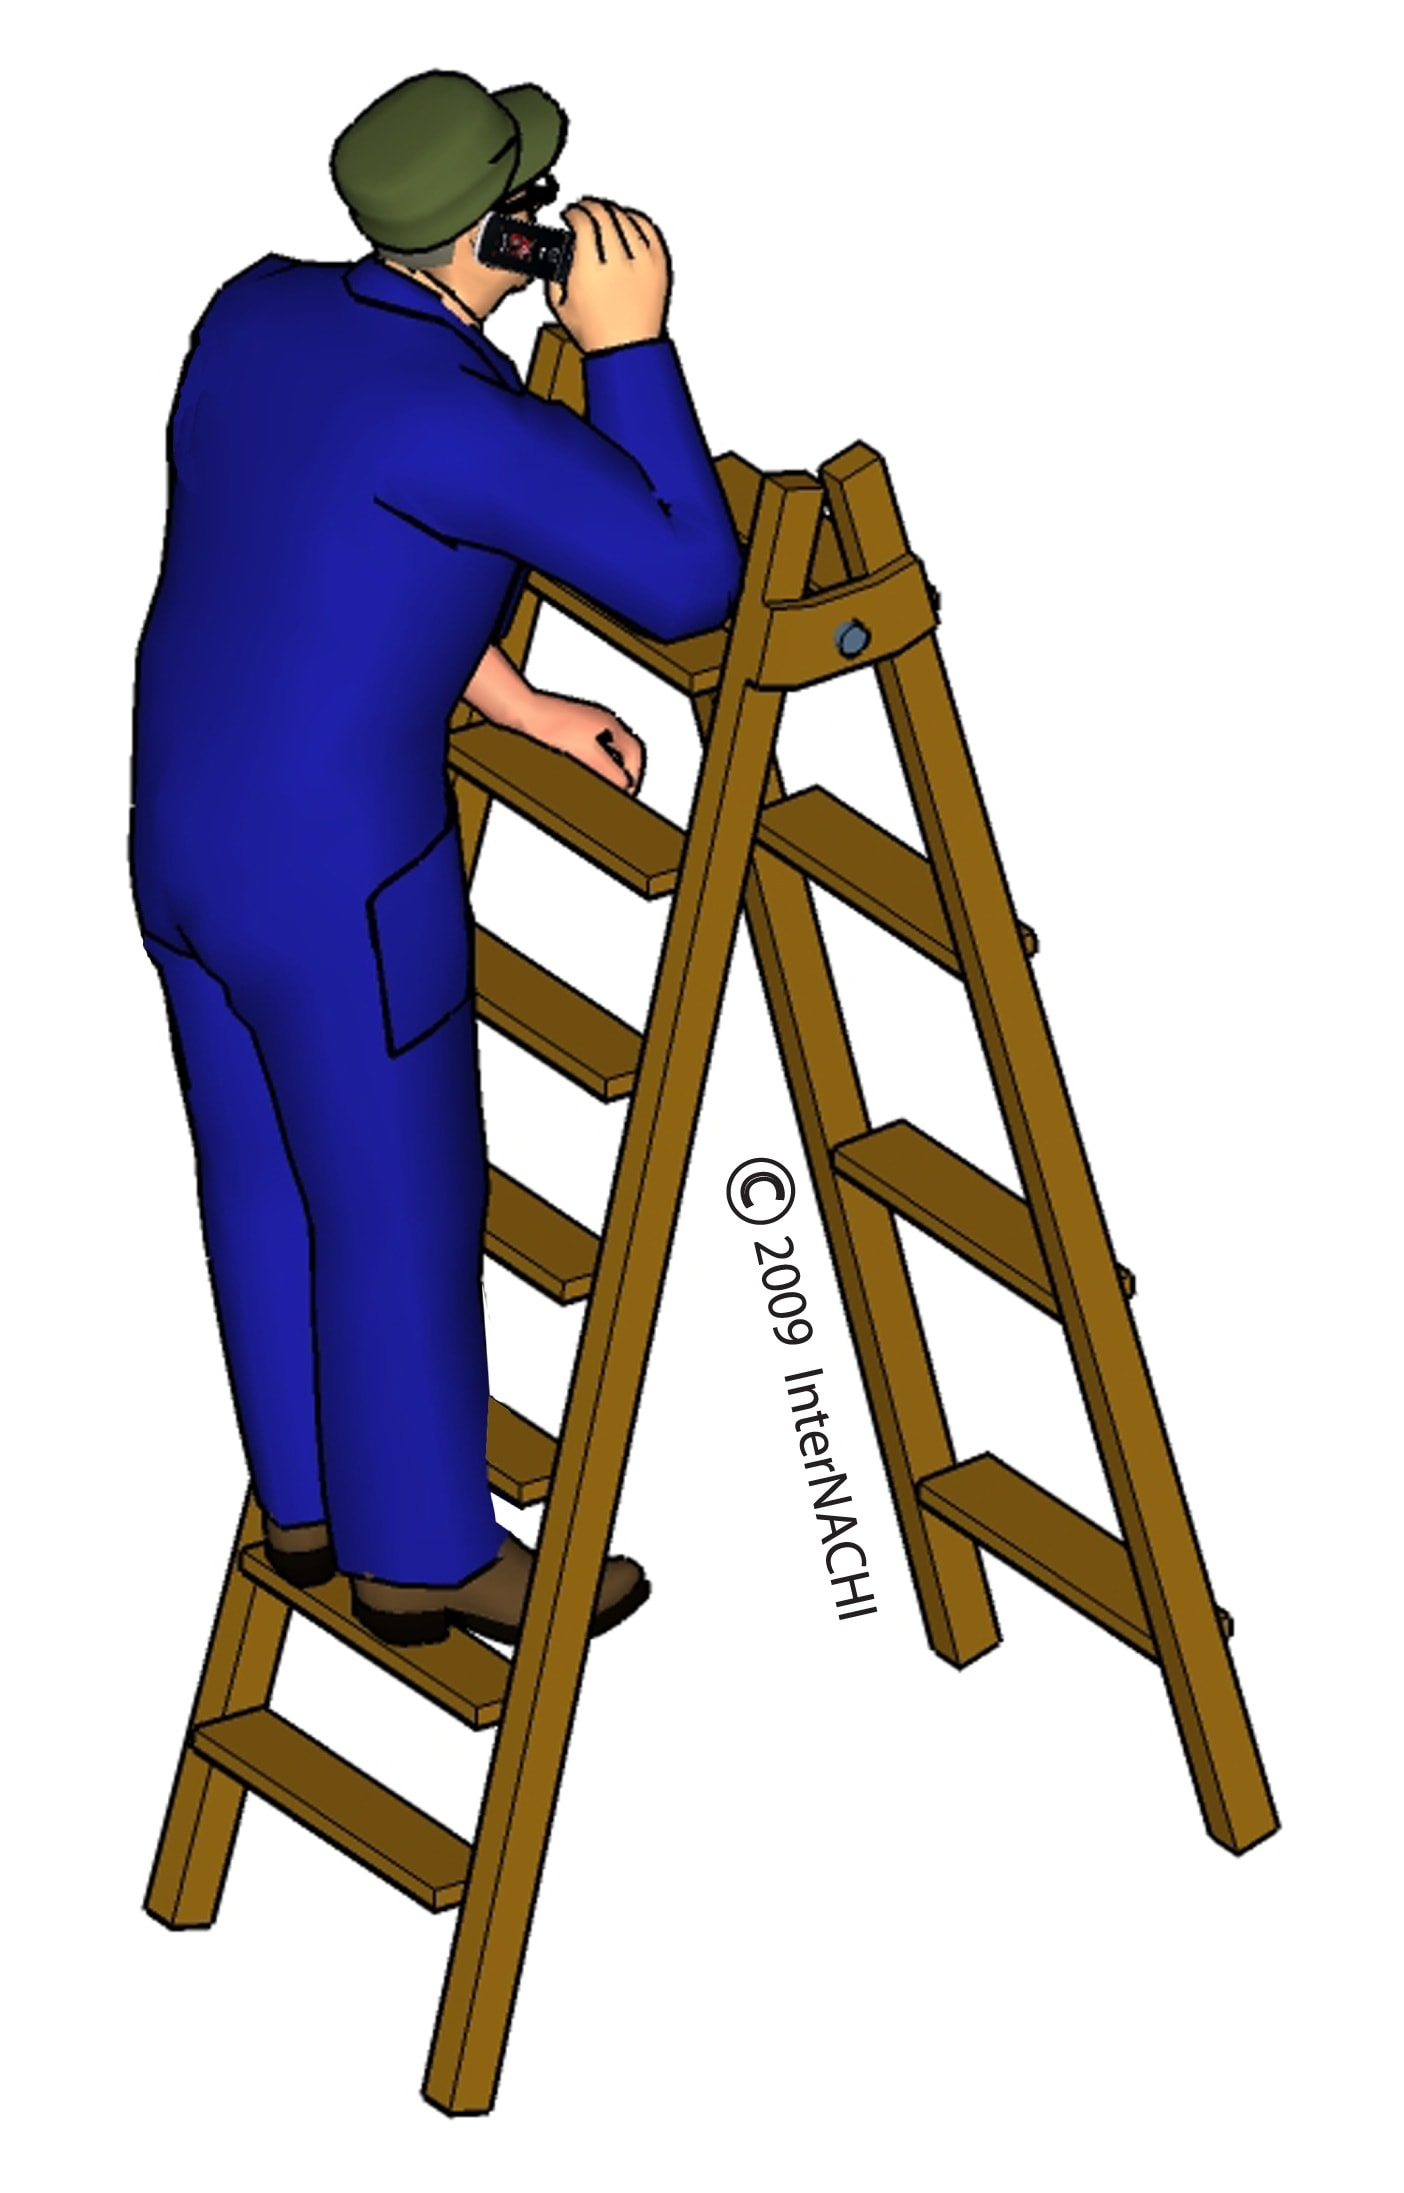 Inspector on a ladder with a cell phone.